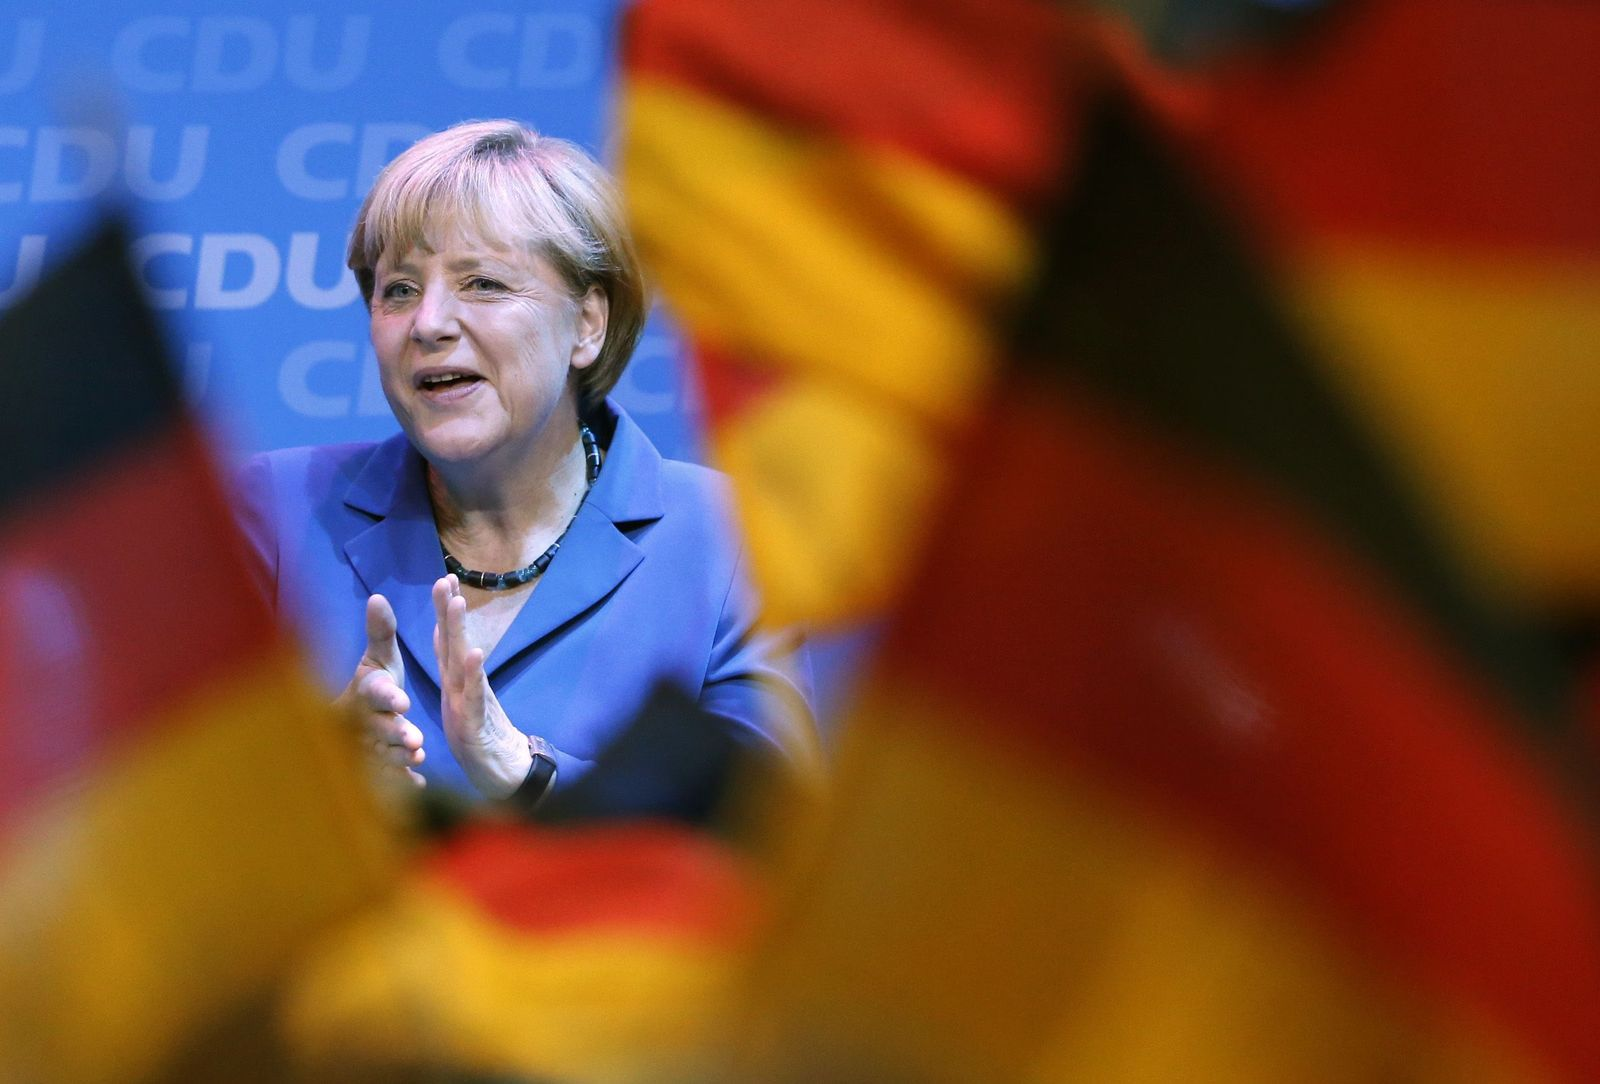 GERMANY-ELECTION/